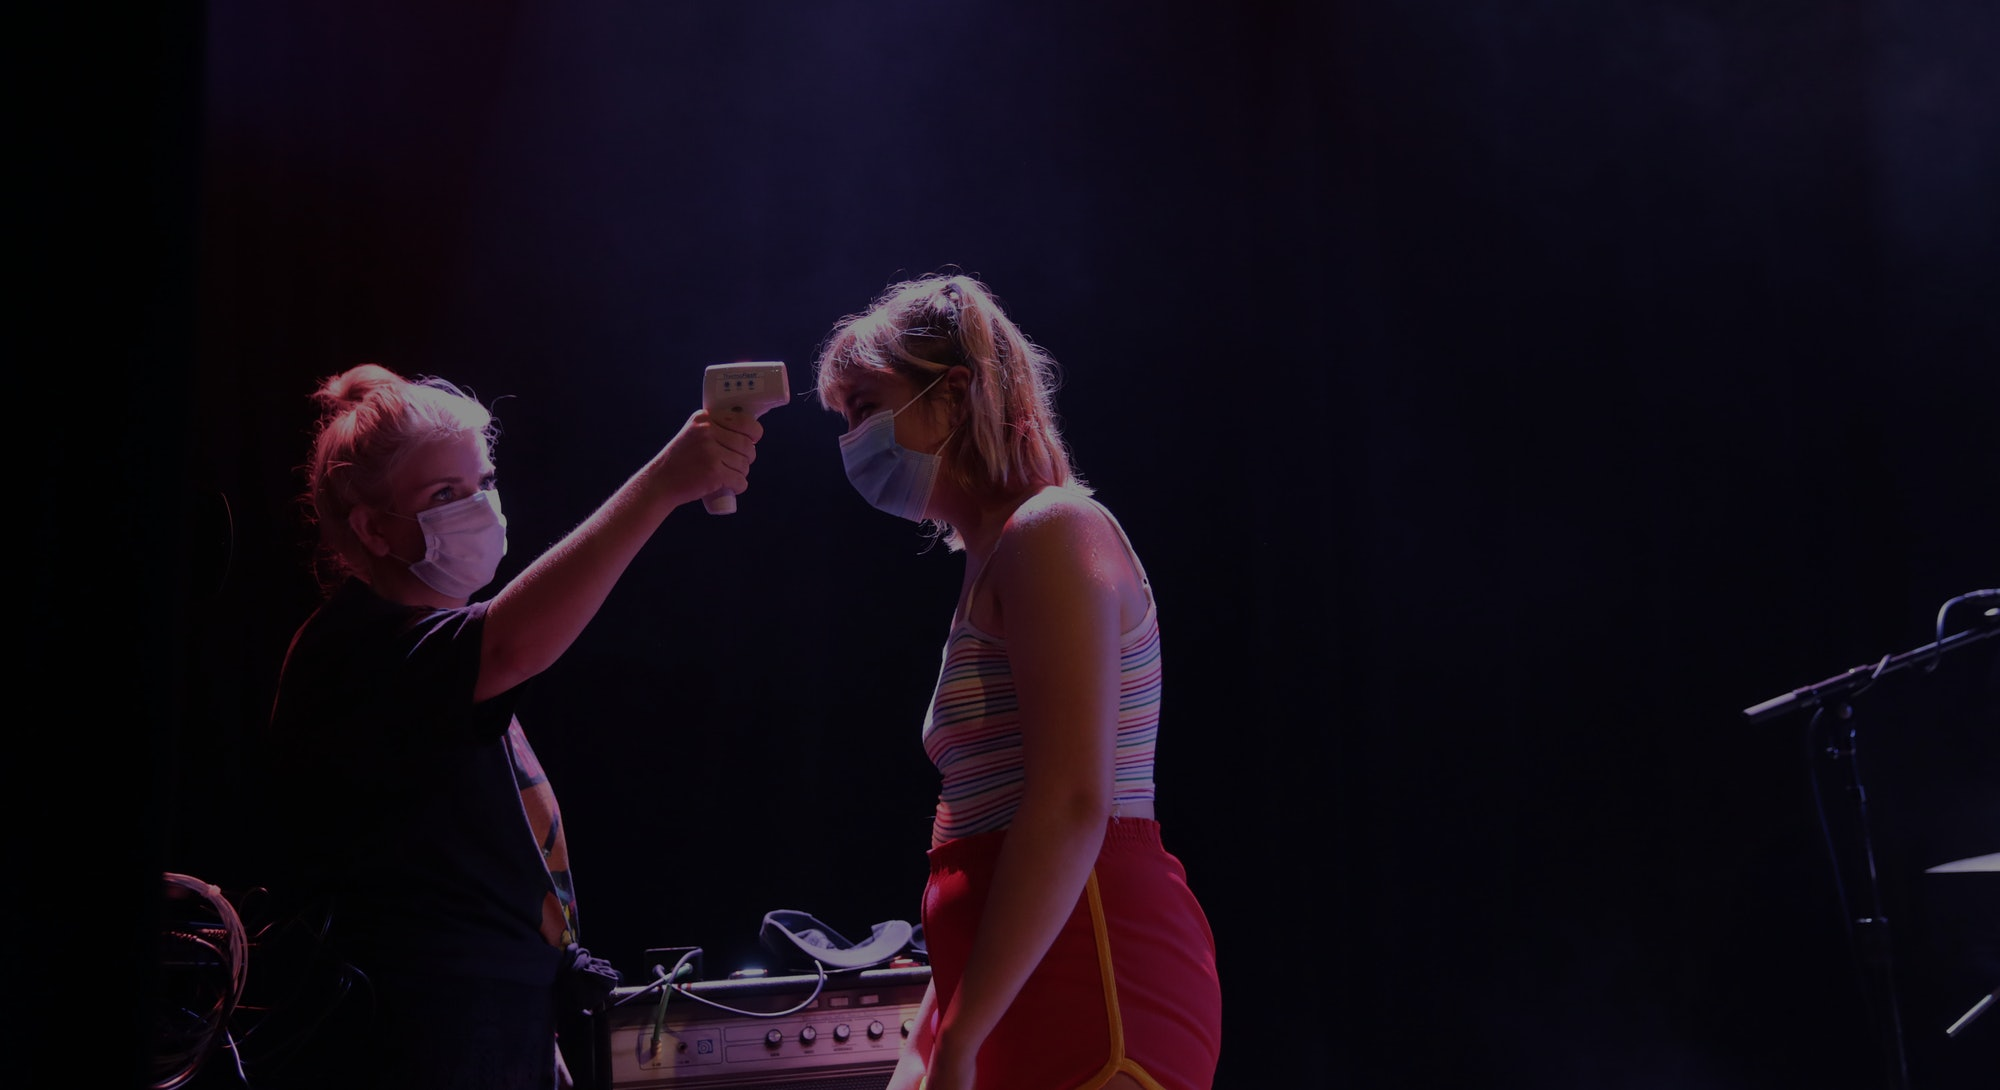 Production manager Emily Egerton takes the temperature of Lili Trifilio of Beach Bunny at Lincoln Hall in Chicago, Illinois on July 15, 2020.